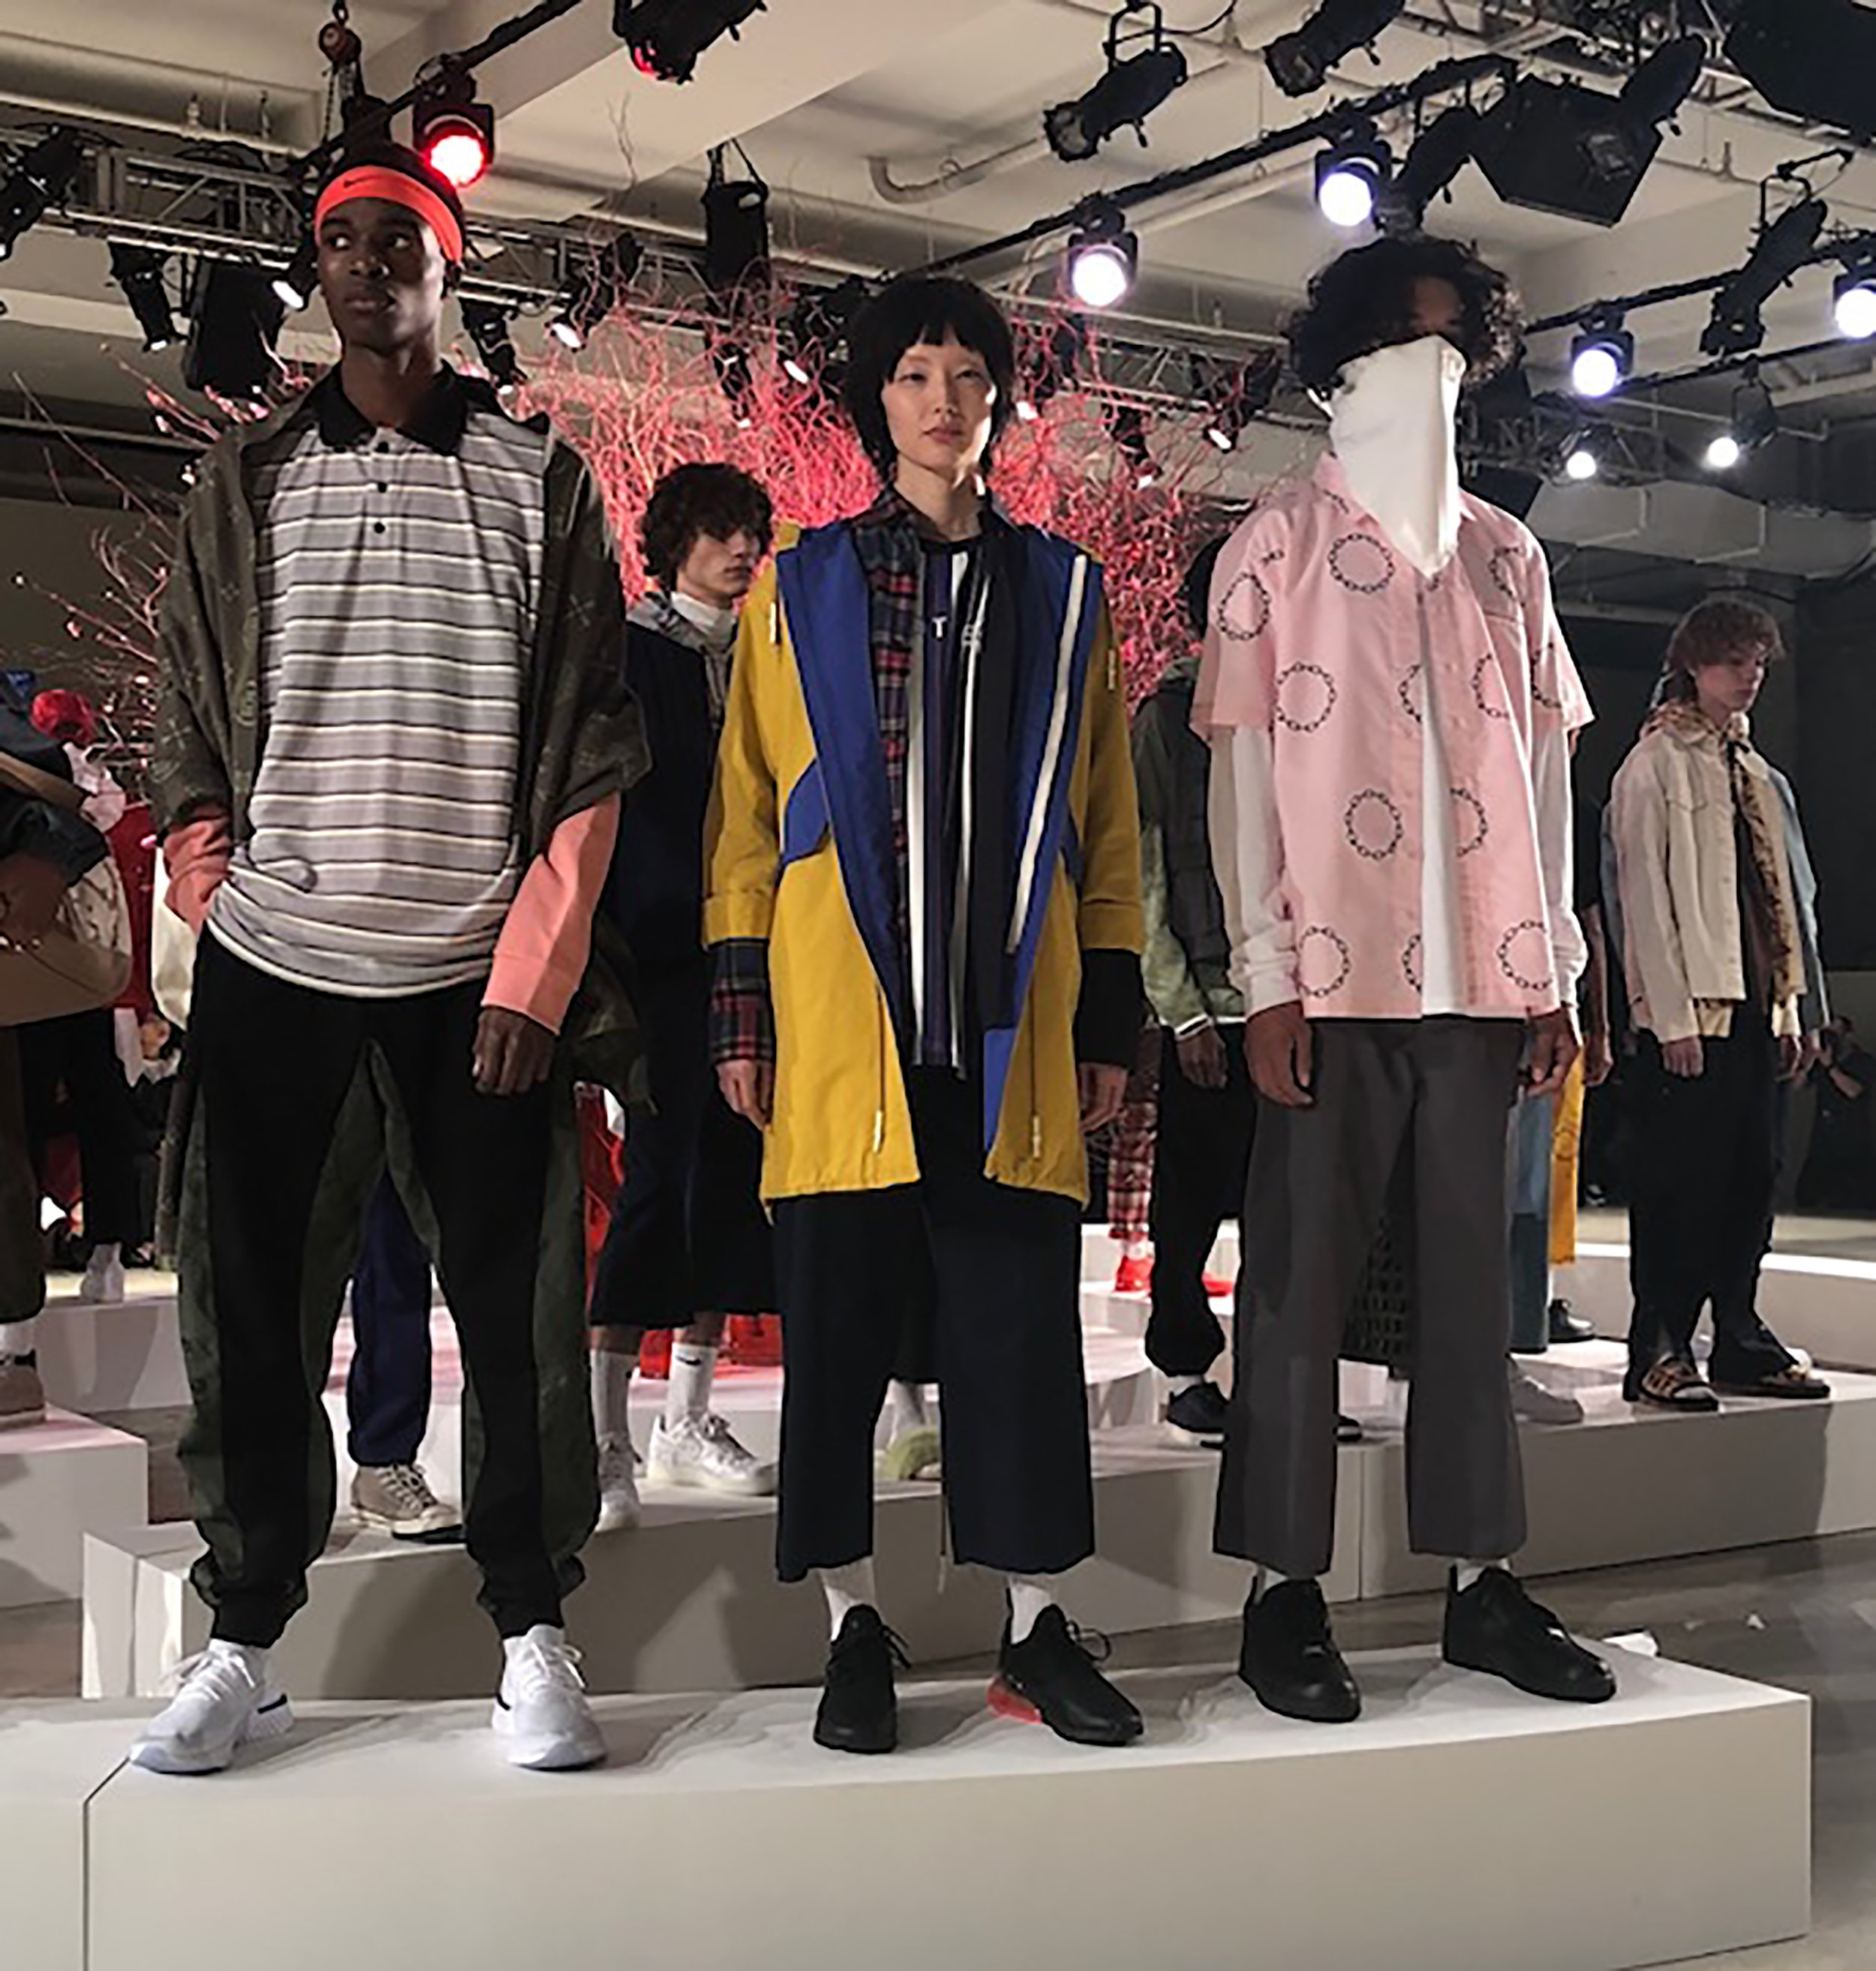 - CLOT:All different ethnicities and cultures join together on the runway.